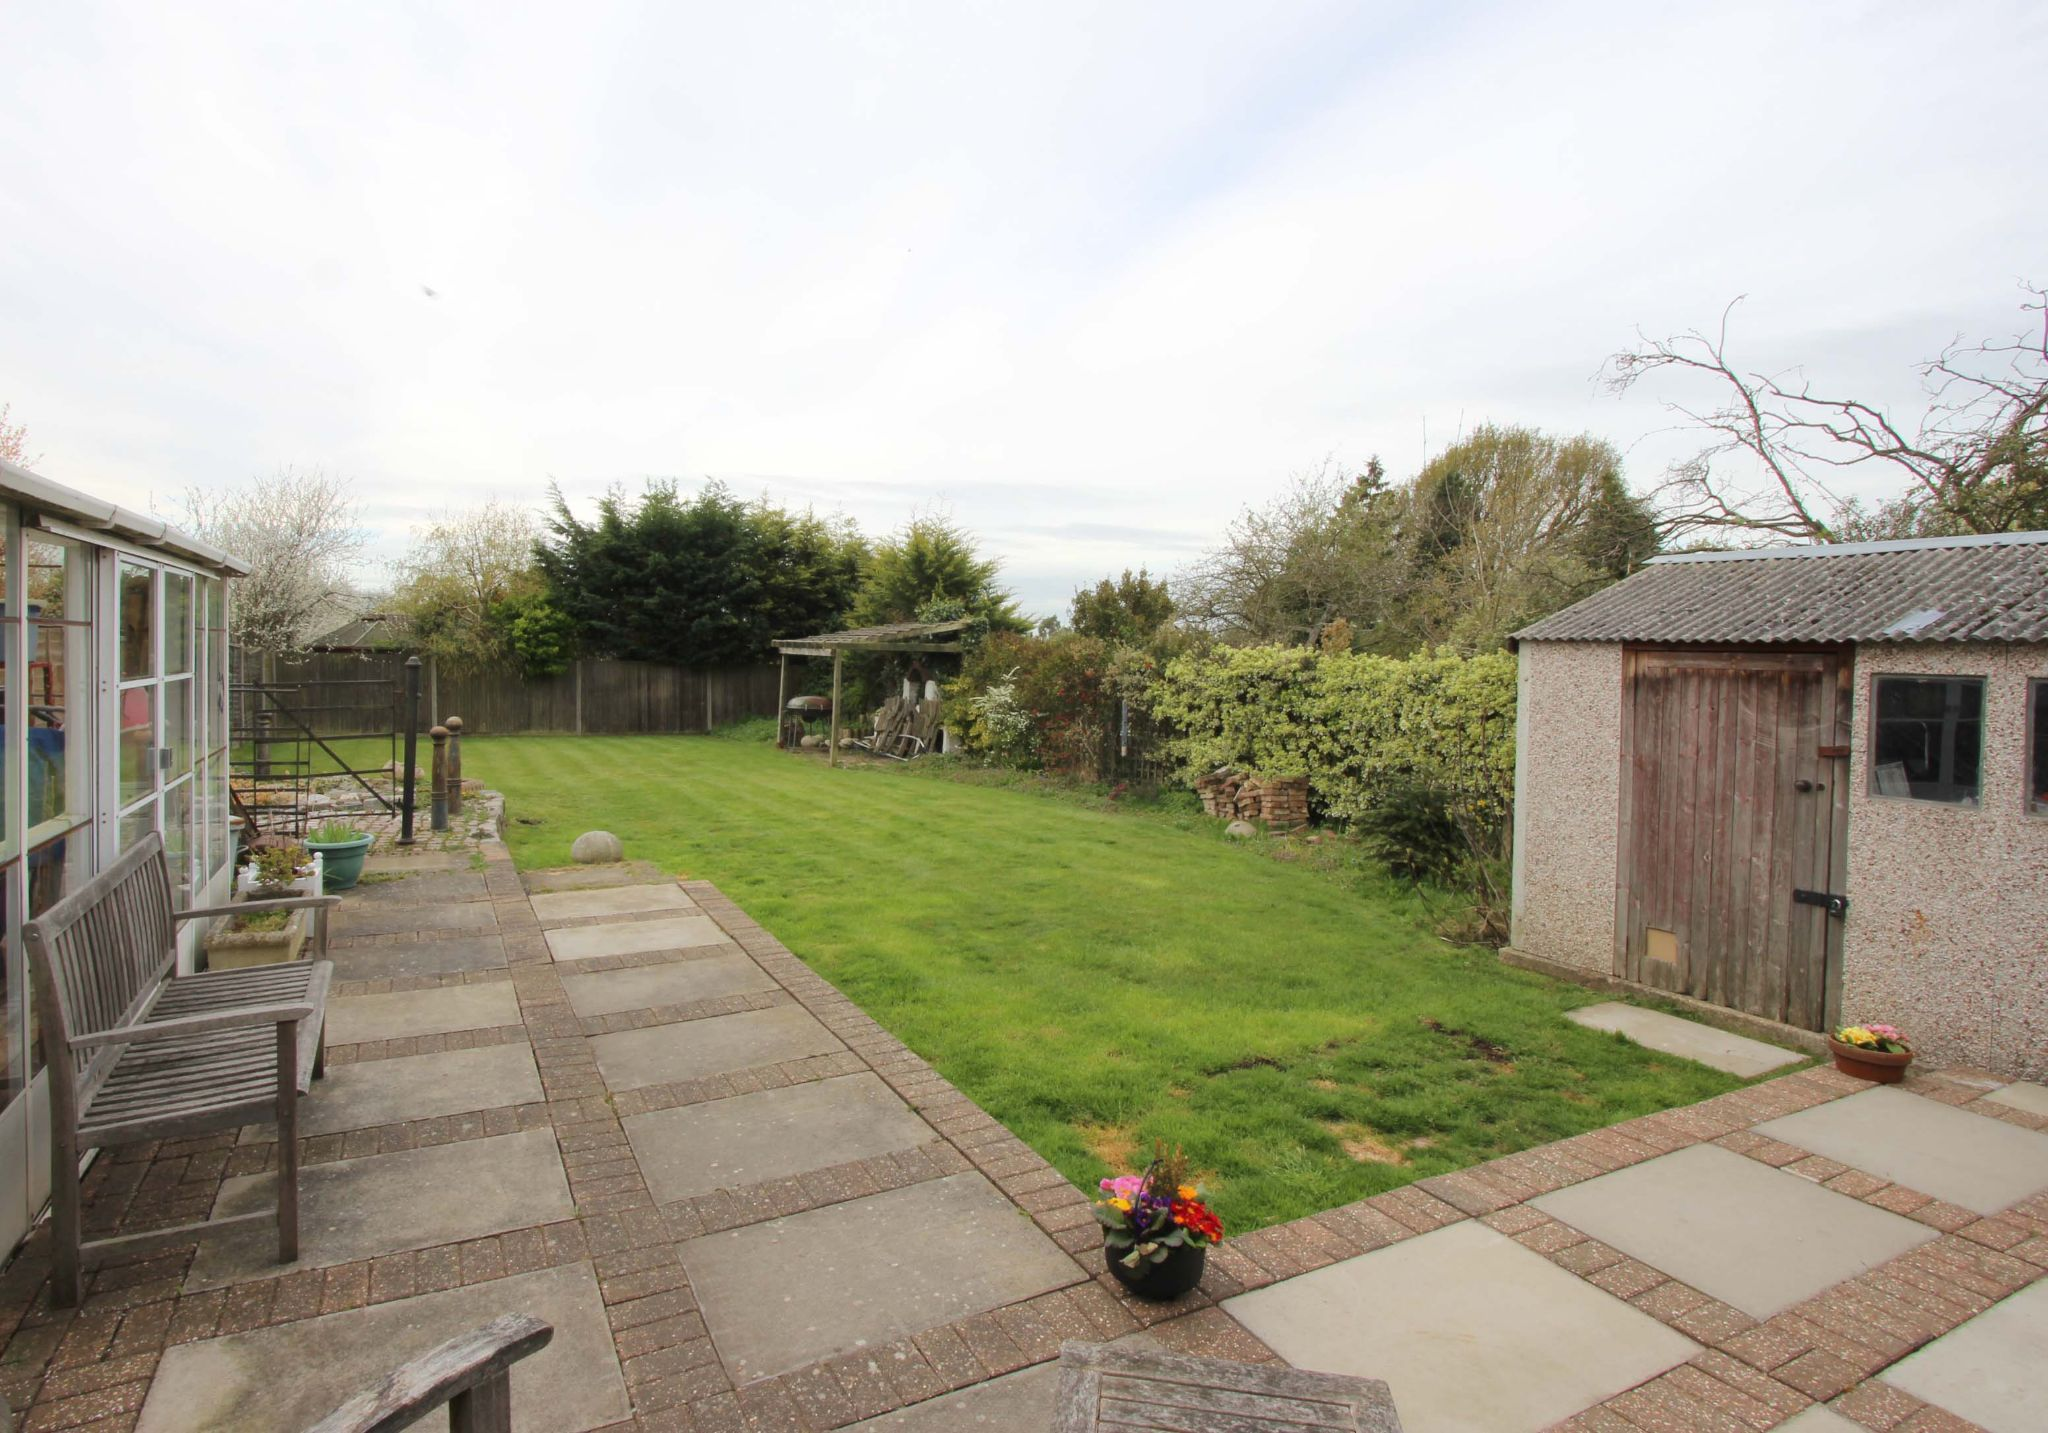 4 bedroom chalet house SSTC in Potters Bar - Photograph 11